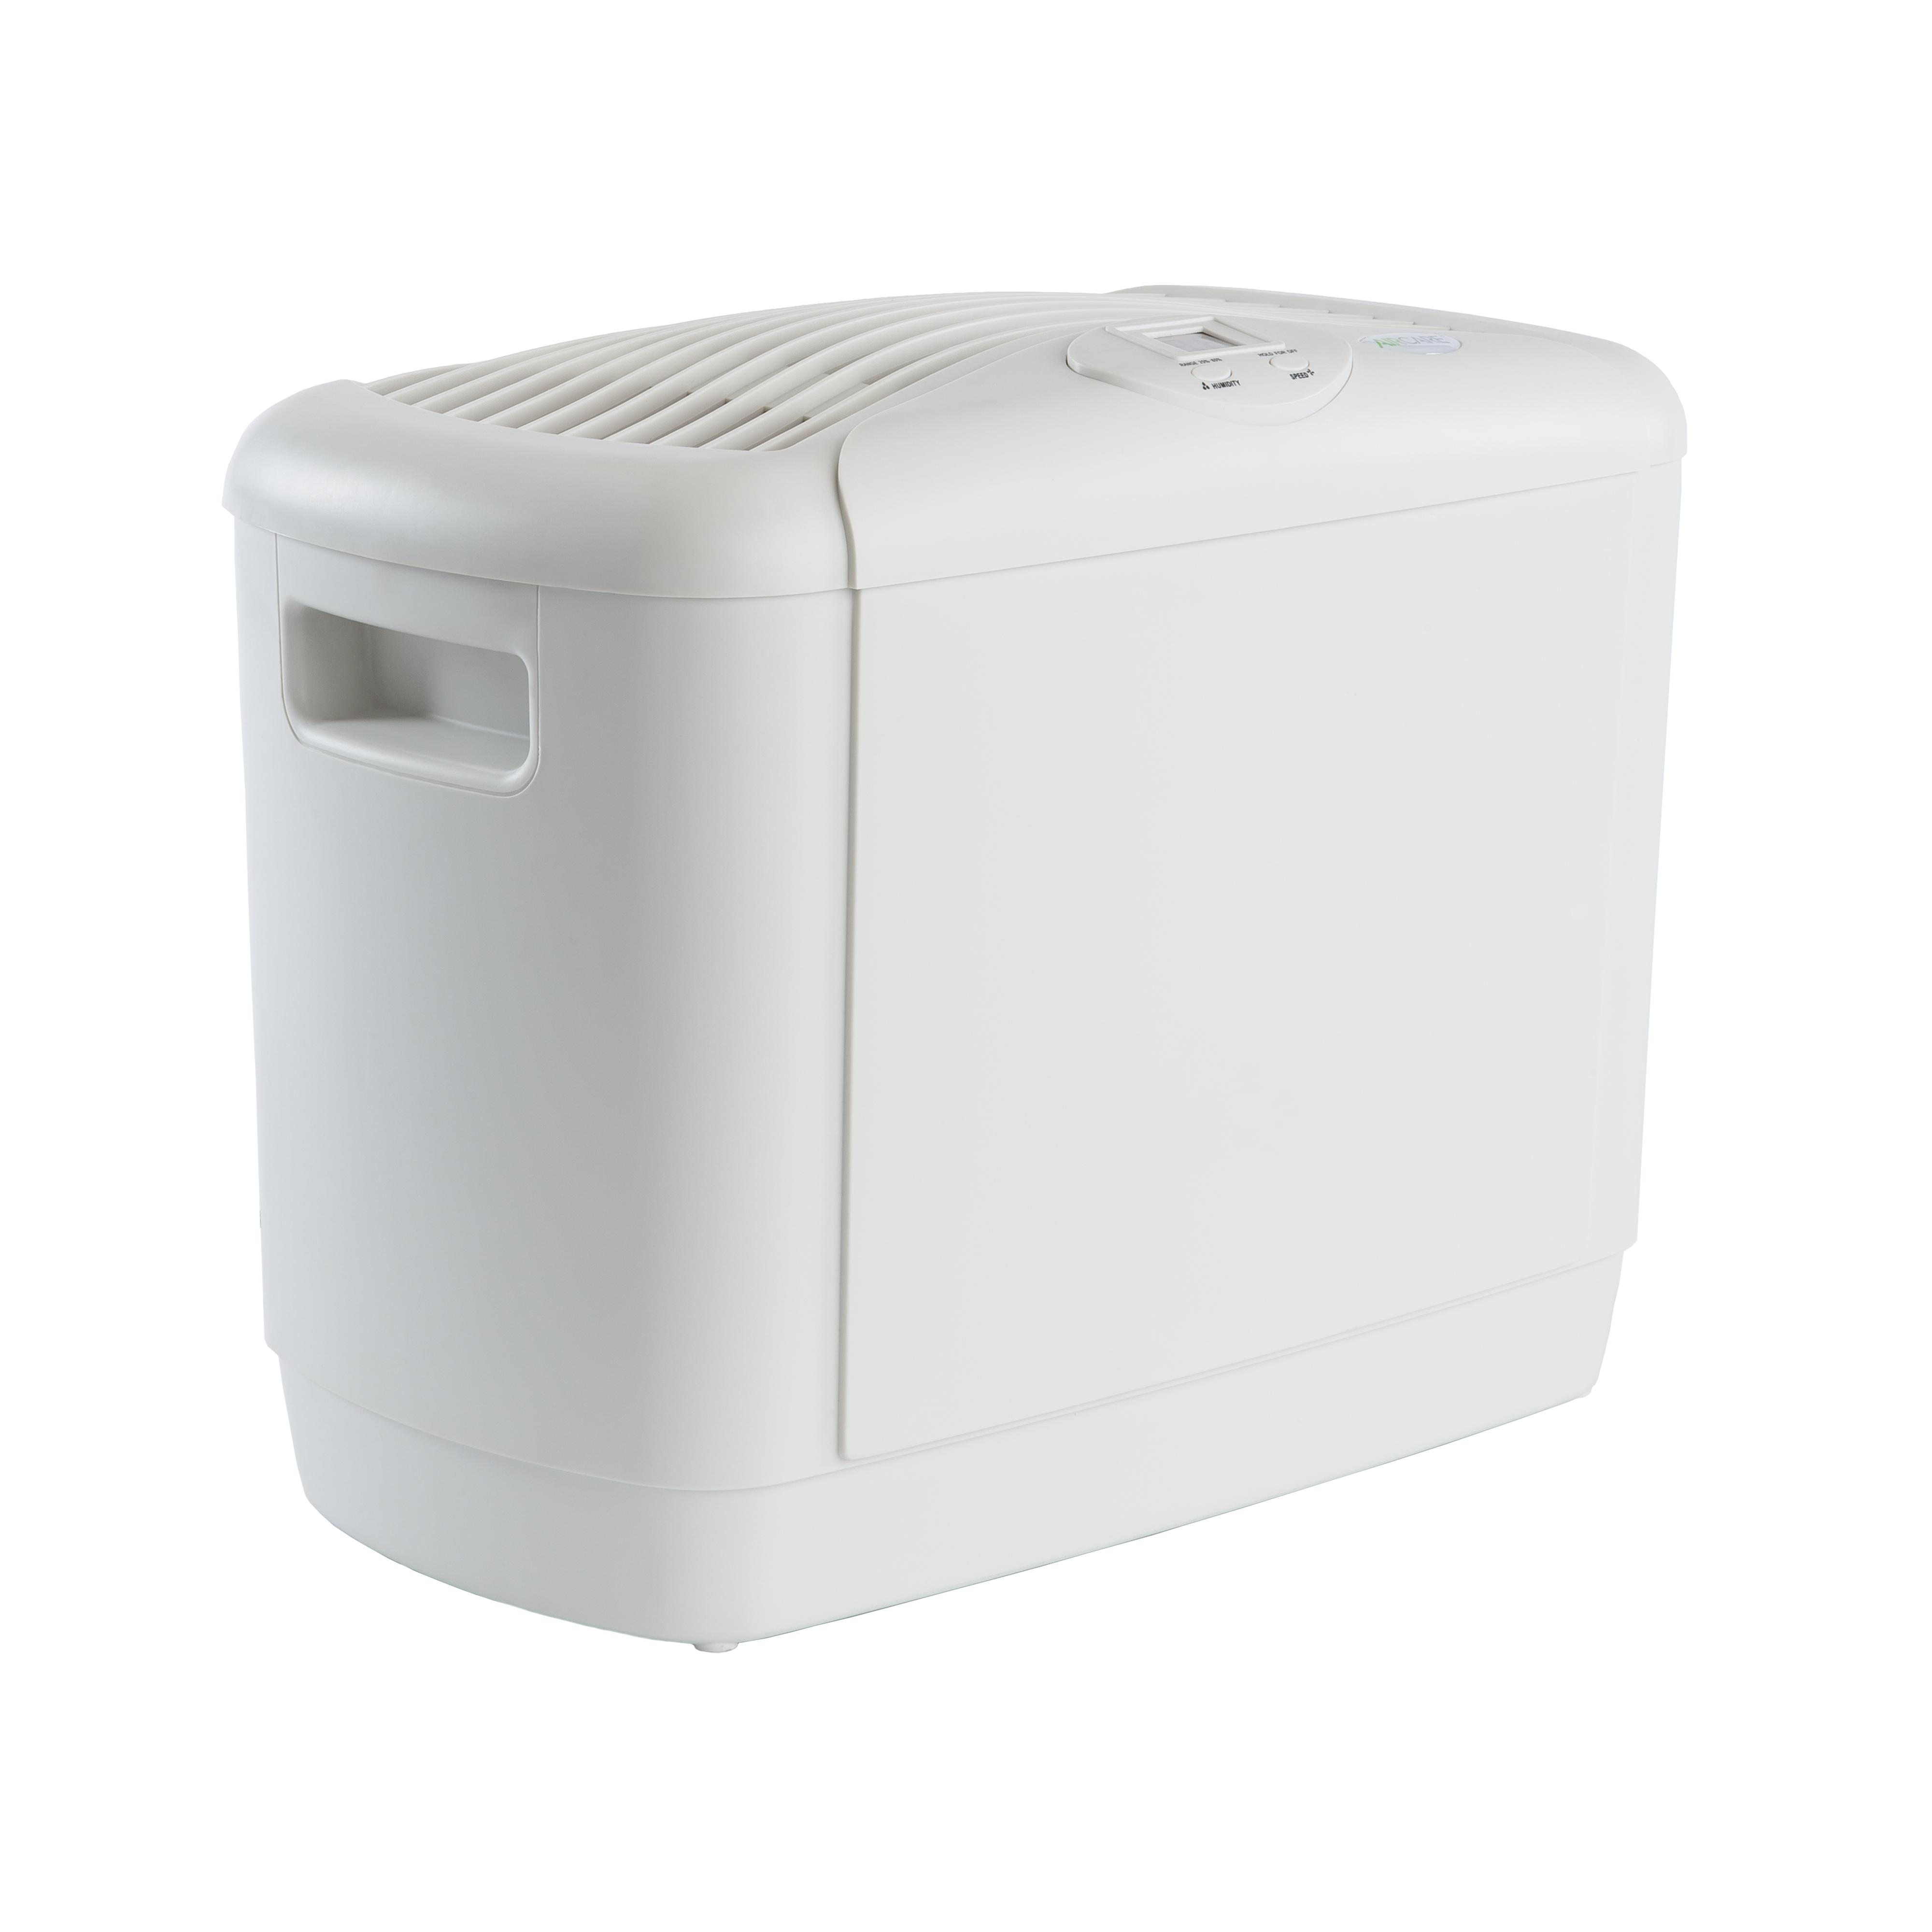 700 4 Speed Mini Console Humidifier White Single Room Humidifiers #6B6760